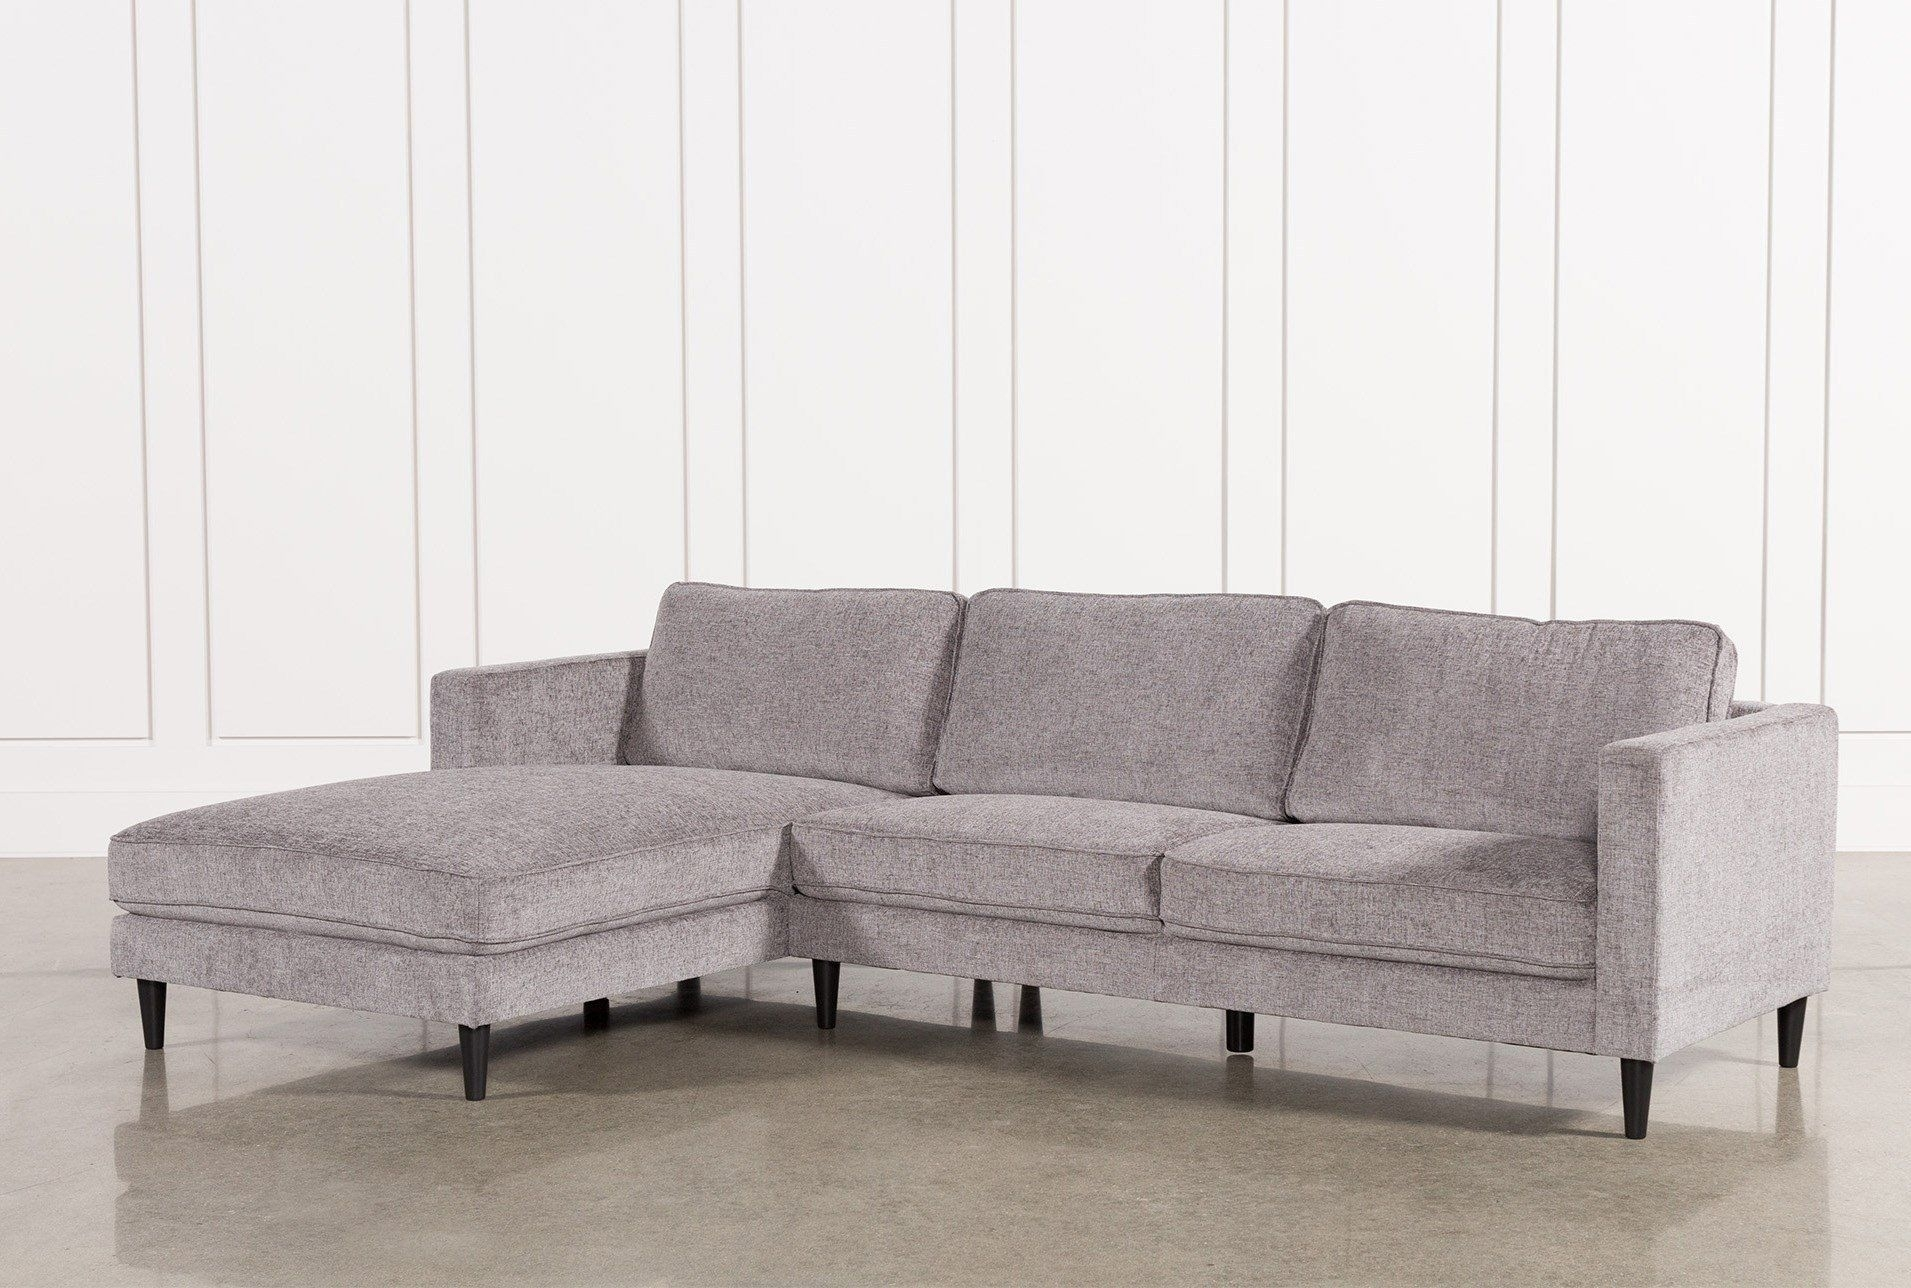 Cosmos Grey 2 Piece Sectional W/laf Chaise | Couches | Pinterest within Aquarius Dark Grey 2 Piece Sectionals With Laf Chaise (Image 12 of 30)